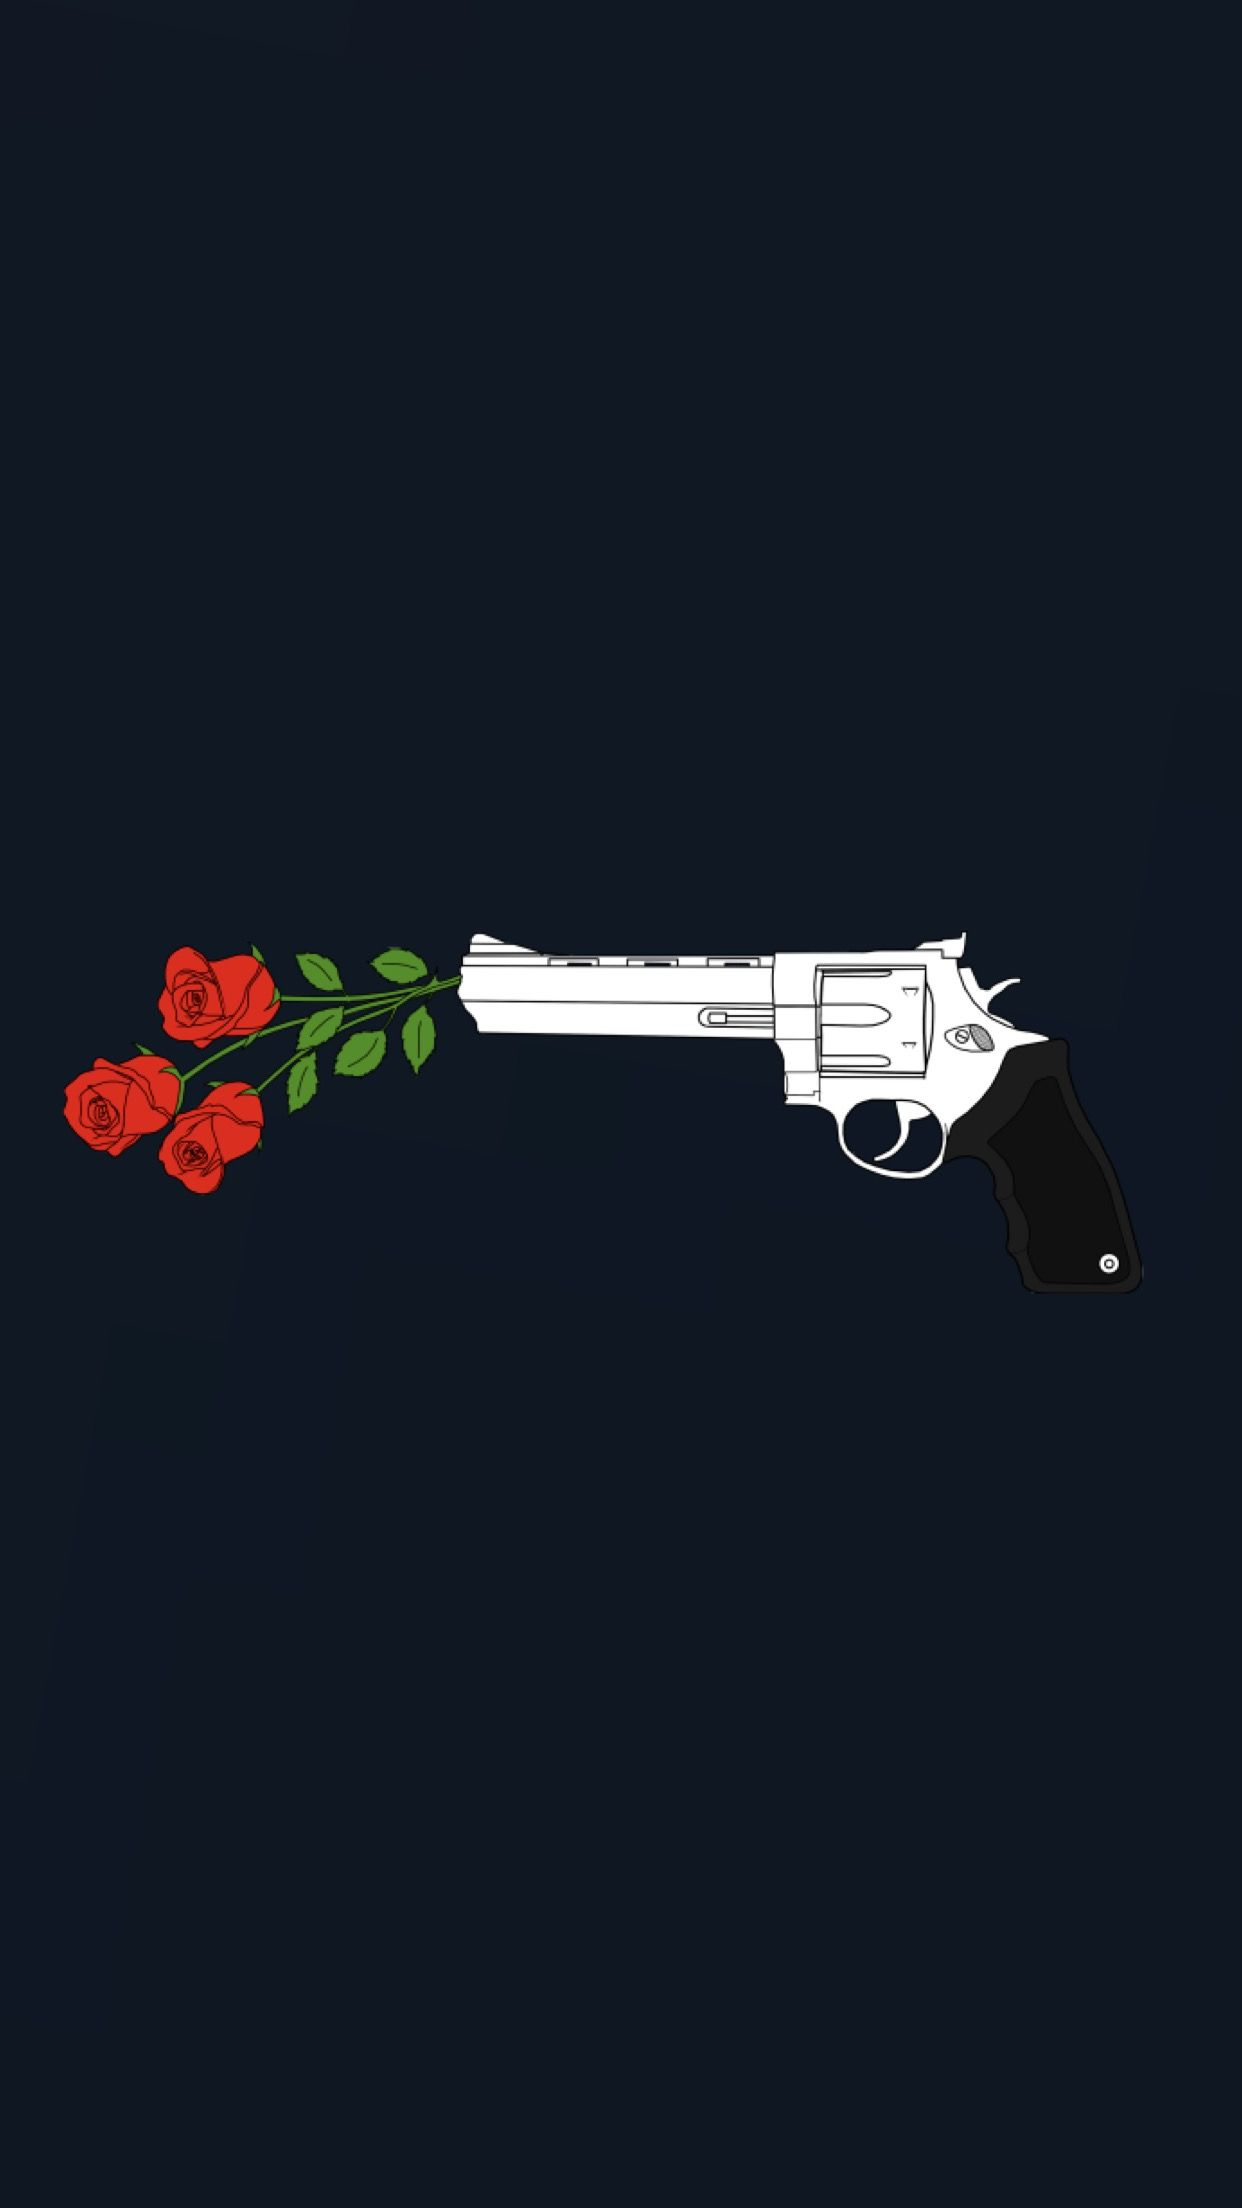 Kill Them With Roses Wallpaper Made By Laurette Instagram